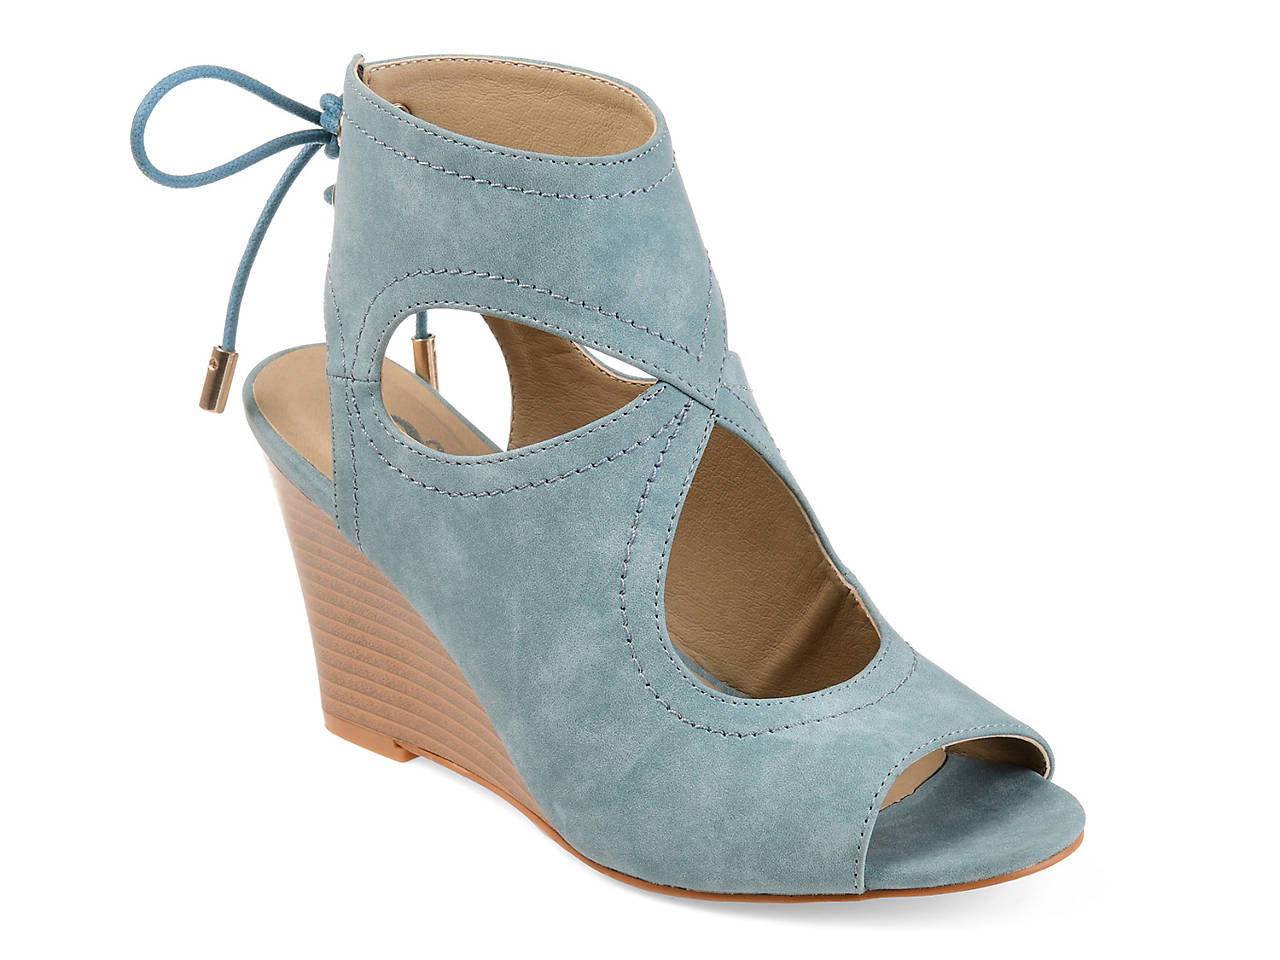 5fc6e2e9fdde Journee Collection Camia Wedge Sandal Women s Shoes